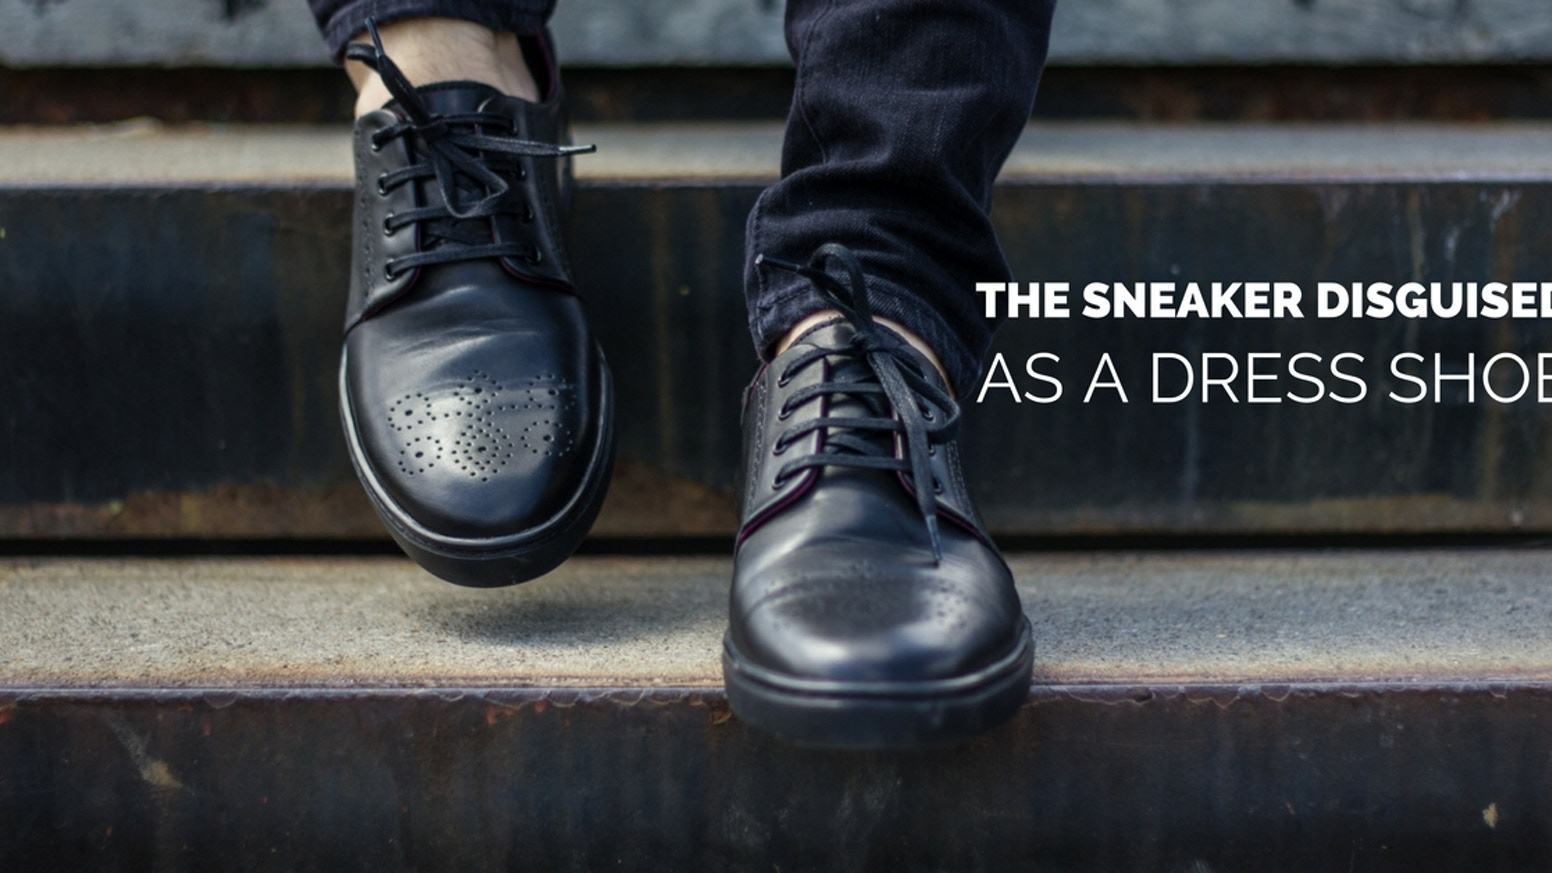 Mix business with pleasure in a pair of sneakers that look like dress shoes.